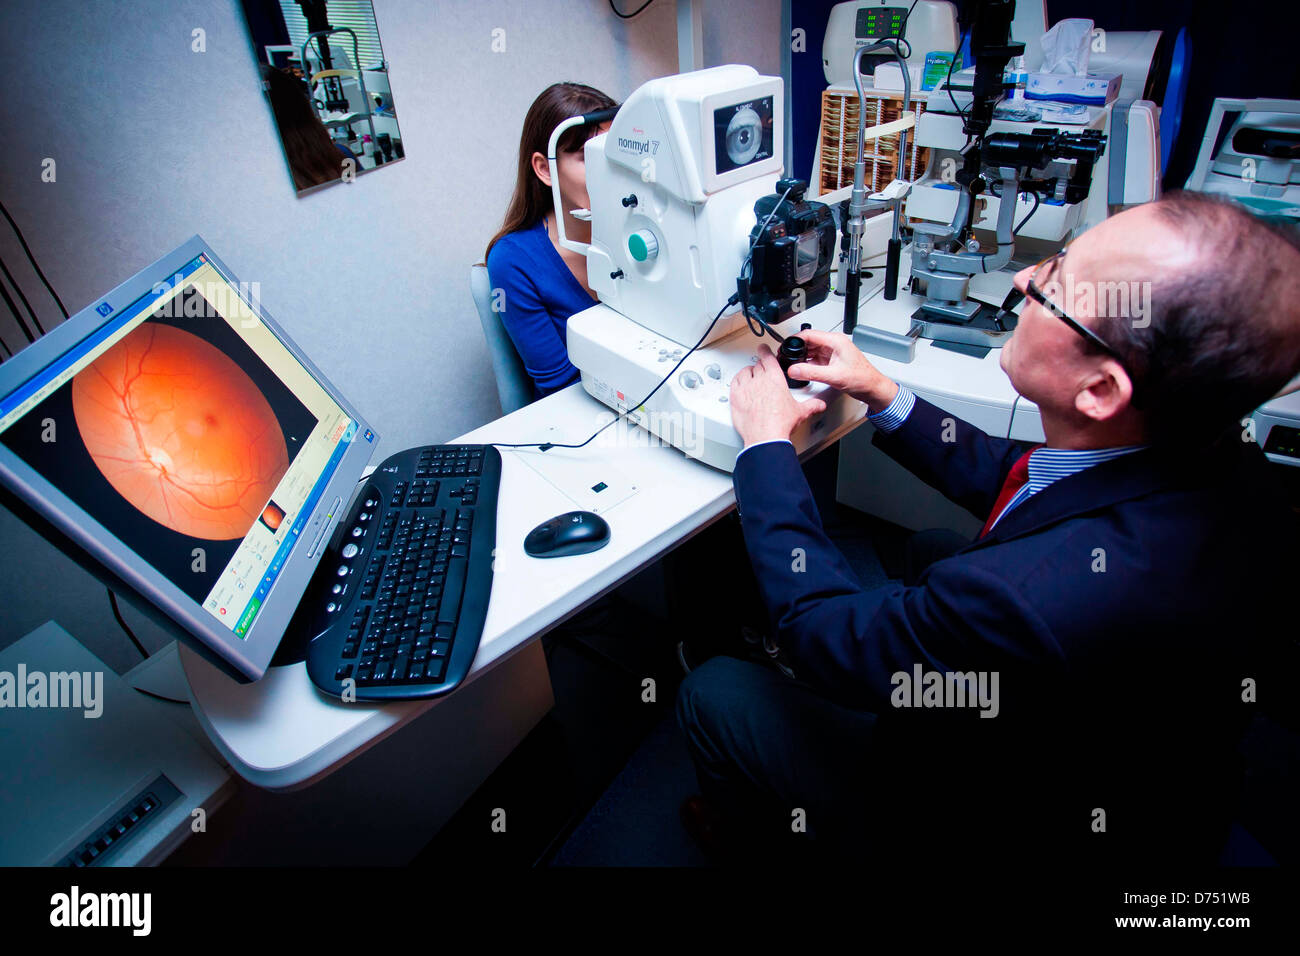 Detection and treatment of keratoconus. Analyses of the anterior segment of the eye in 3D - Stock Image